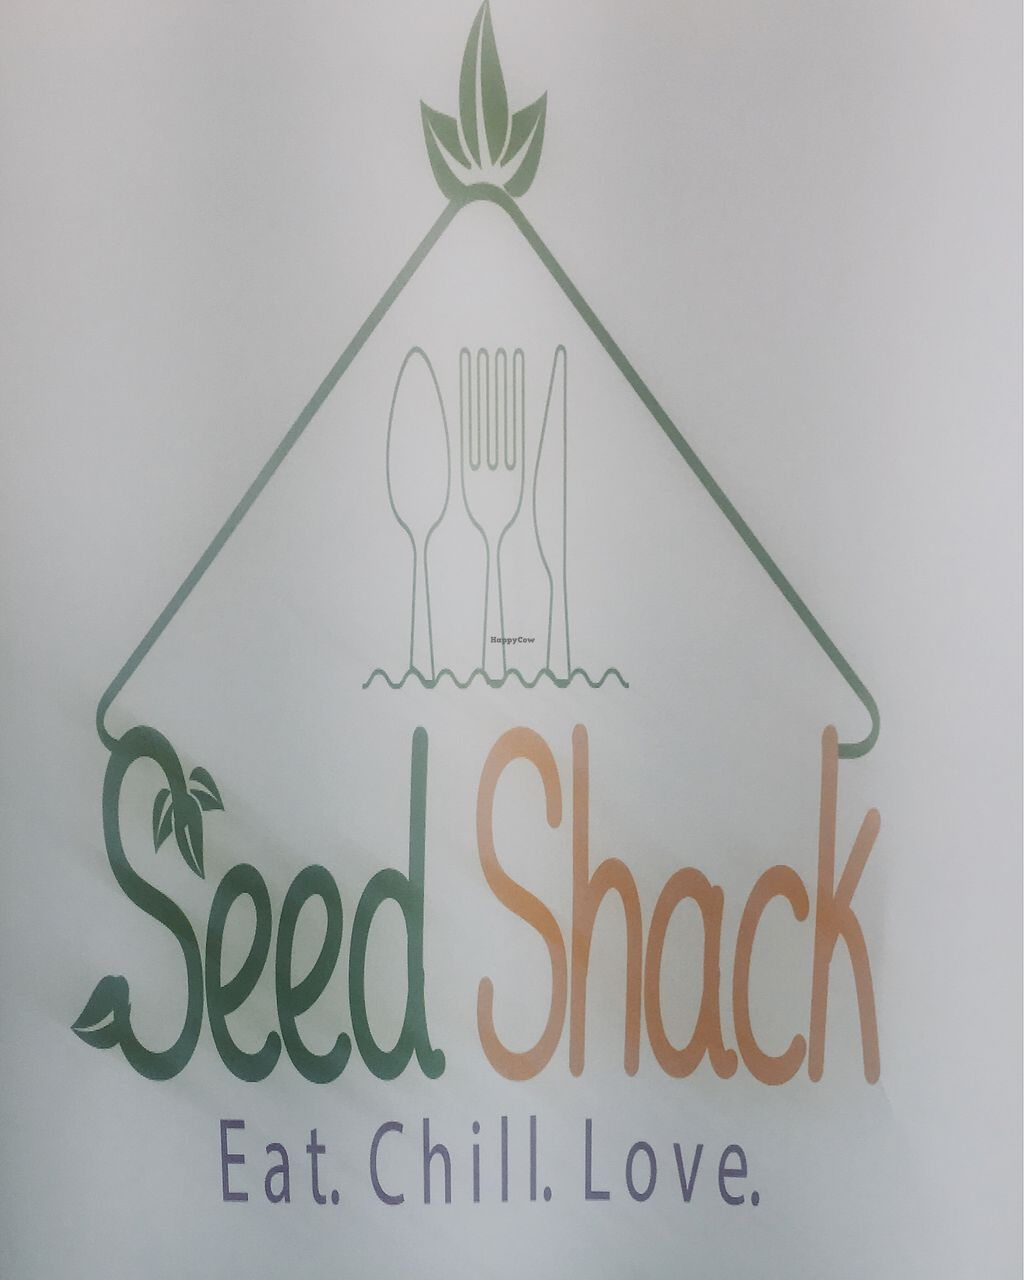 """Photo of Seed Shack  by <a href=""""/members/profile/Dnymud"""">Dnymud</a> <br/>The Seed Shack <br/> February 4, 2018  - <a href='/contact/abuse/image/104258/355060'>Report</a>"""